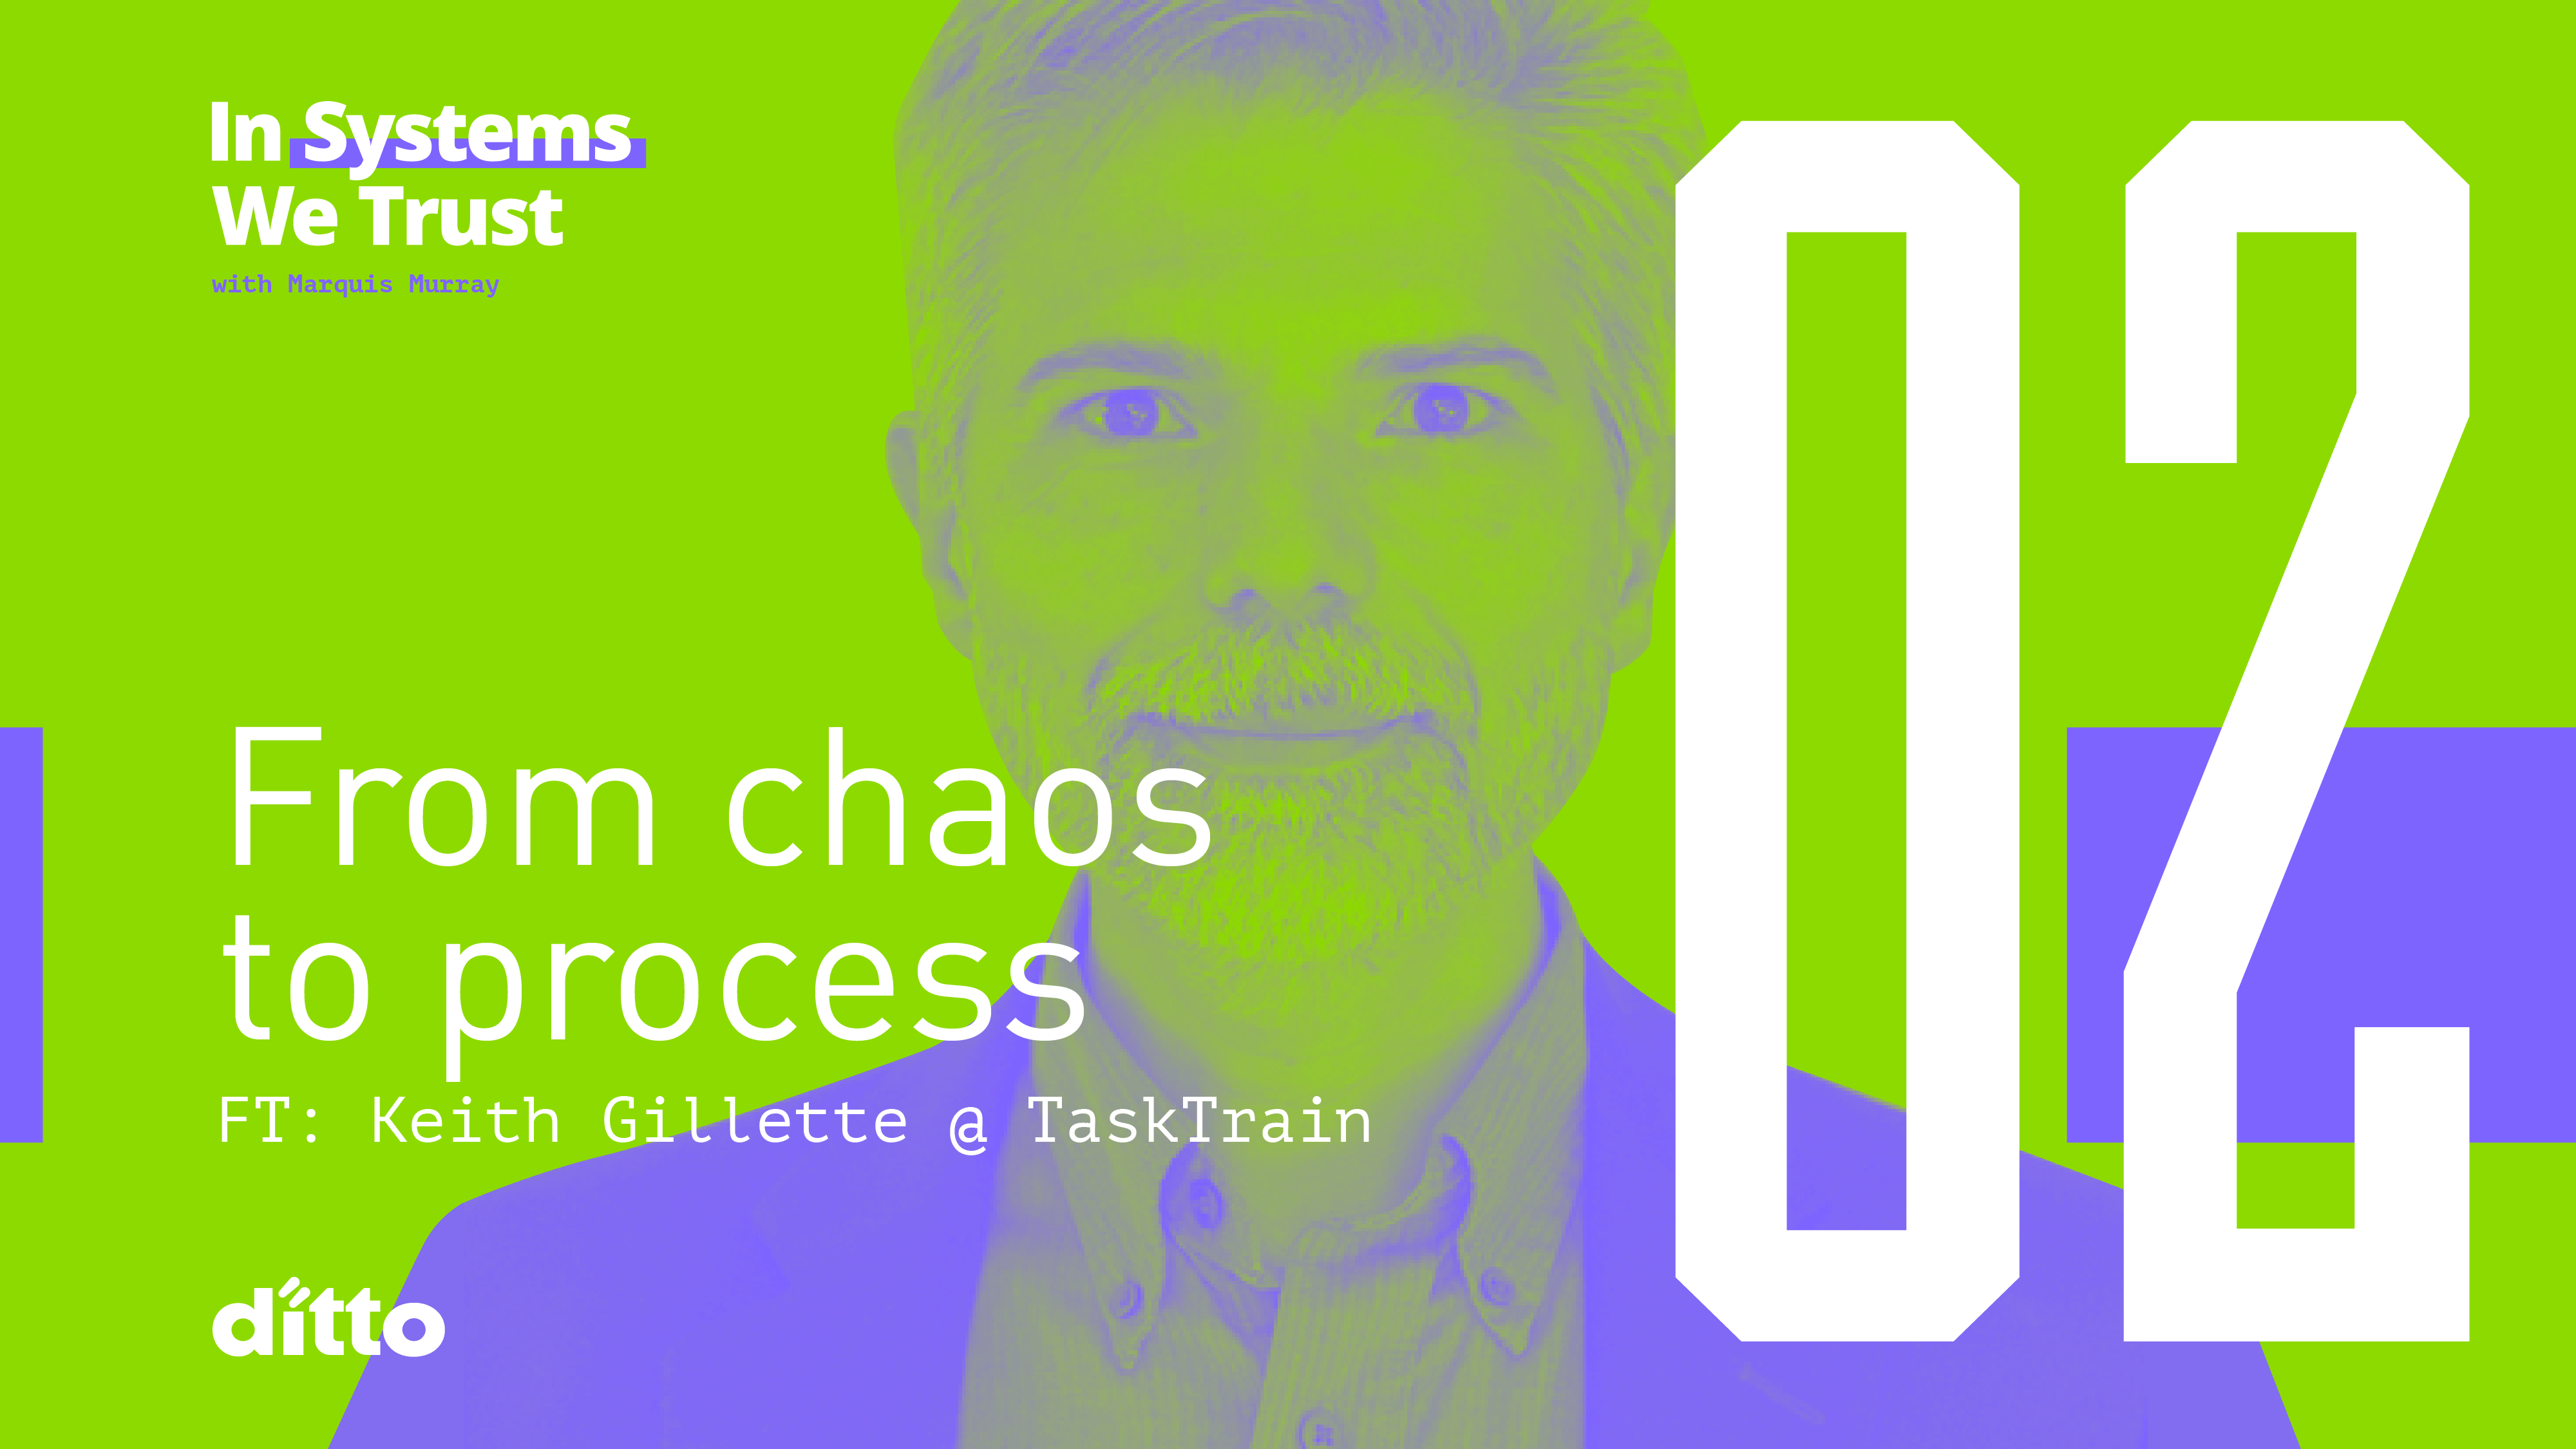 Keith Gillette of Task Train